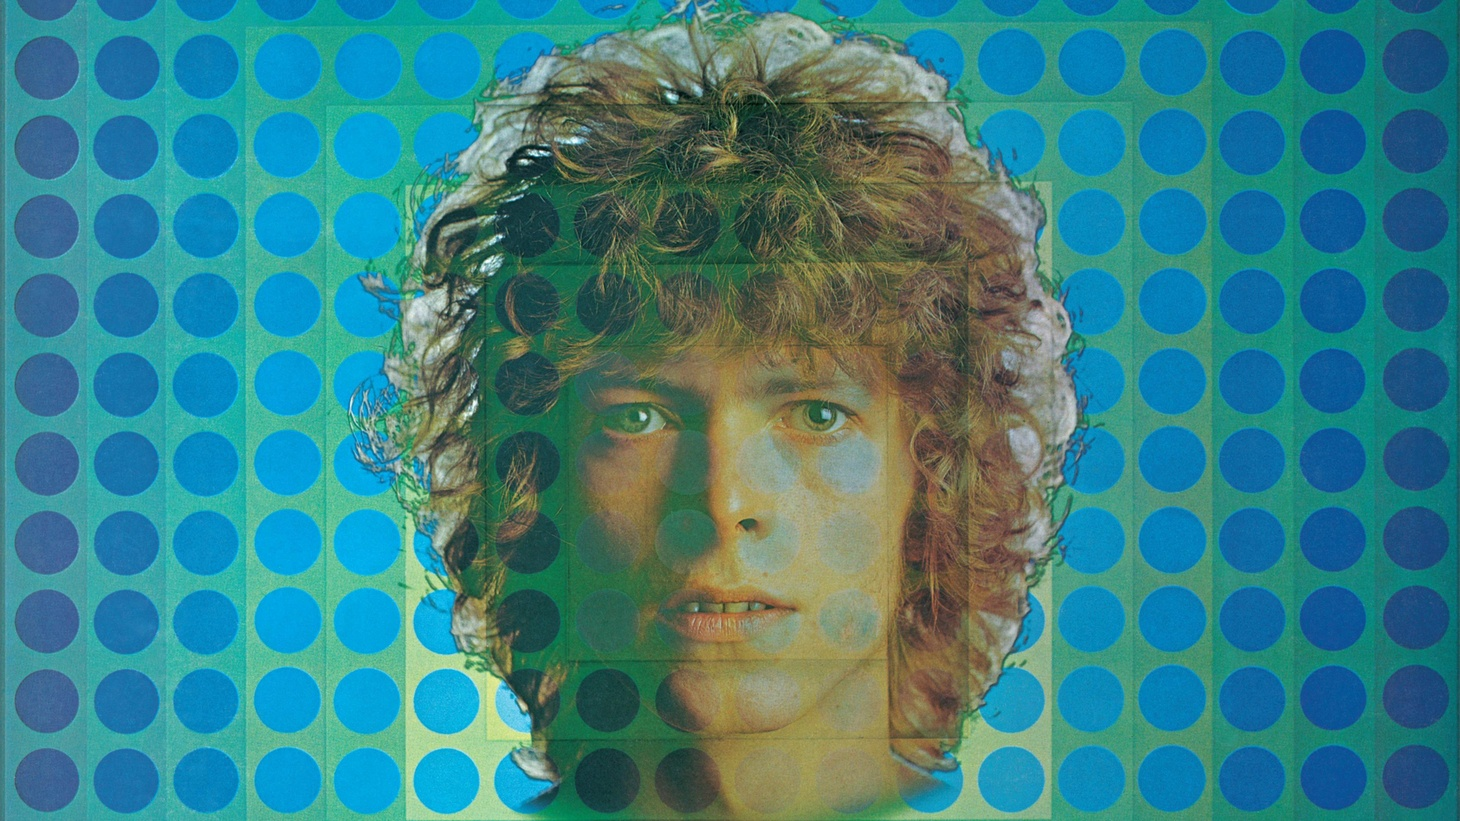 """It's been 40 years since David Bowie recorded the single """"Space Oddity,"""" coinciding with the Apollo 11 moon landing. This psychedelic and timeless track has just been reissued on a limited edition 2-CD collection titled Space Oddity (Space Oddity 40th Anniversary Edition) and we are happy to offer it as Today's Top Tune."""